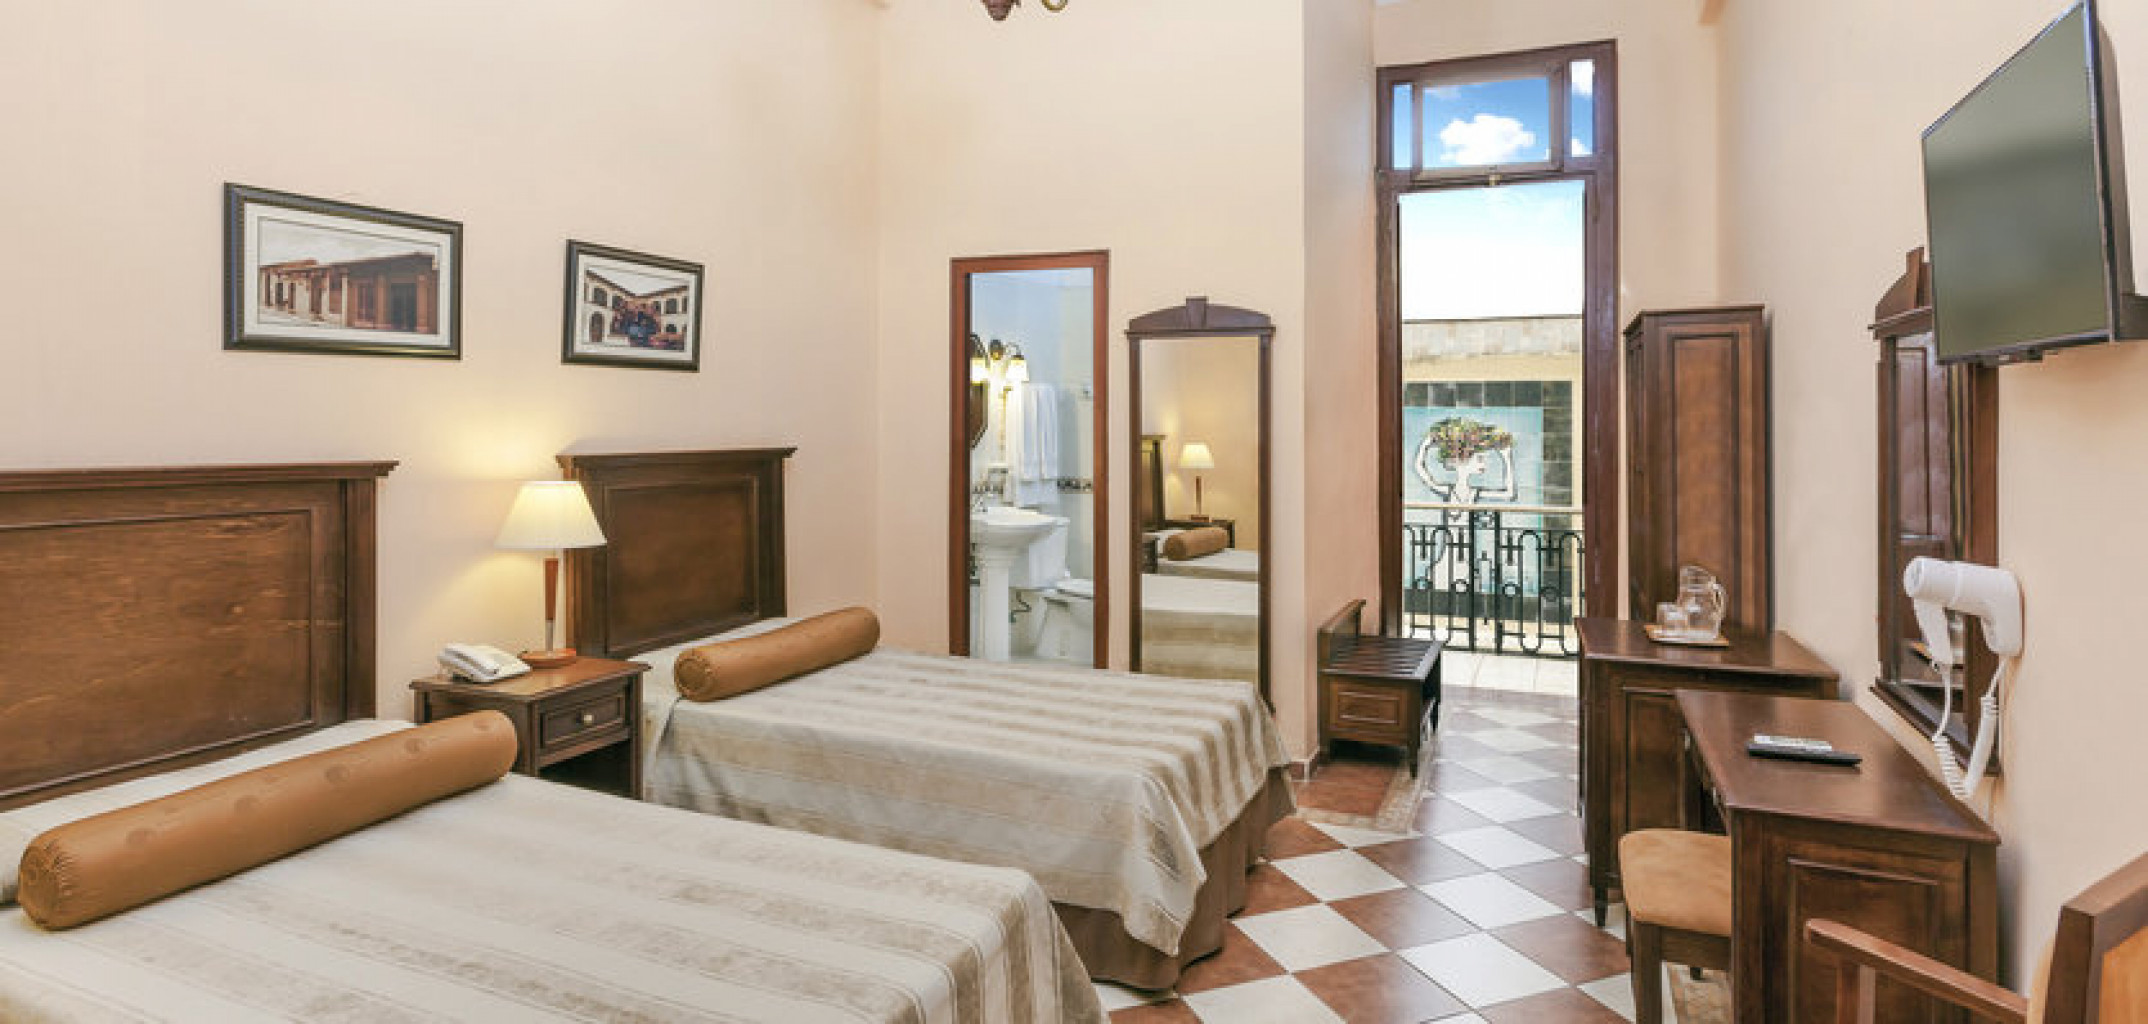 GRAN HOTEL managed by Meliá Hotels International - Chambre double - 1